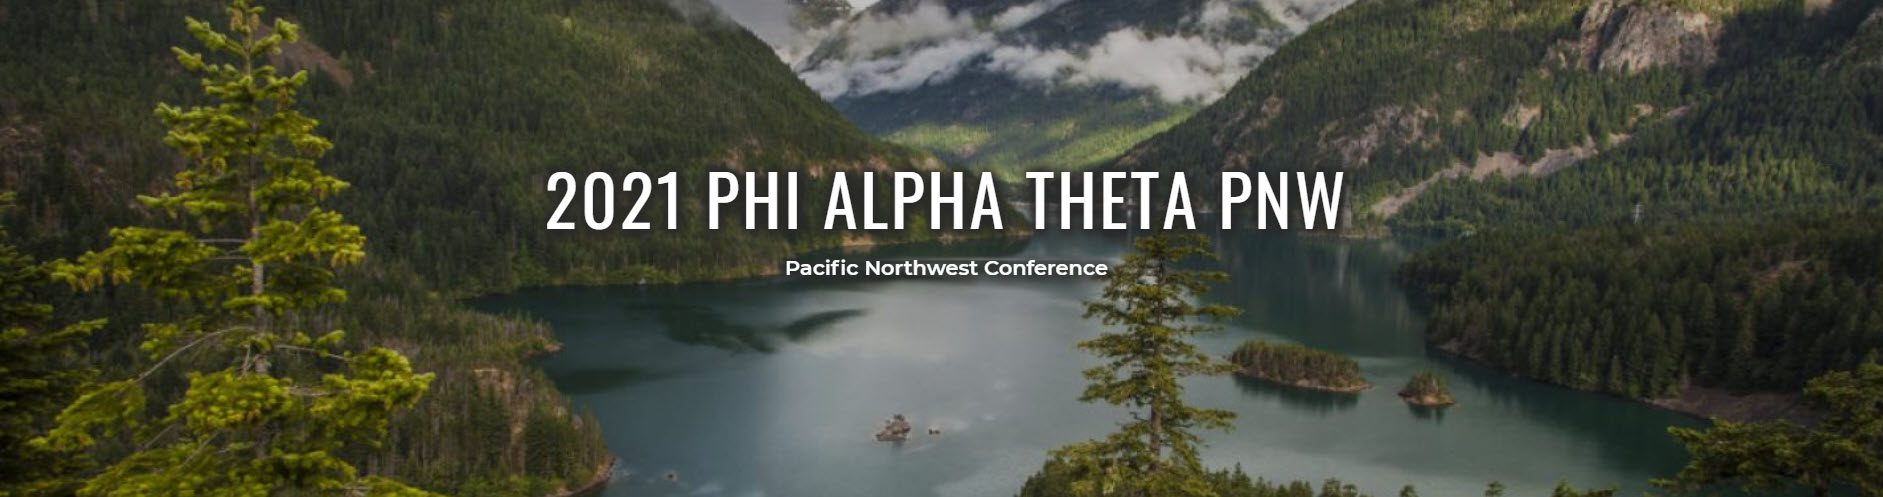 Phi Alpha Theta Pacific Northwest Regional Conference